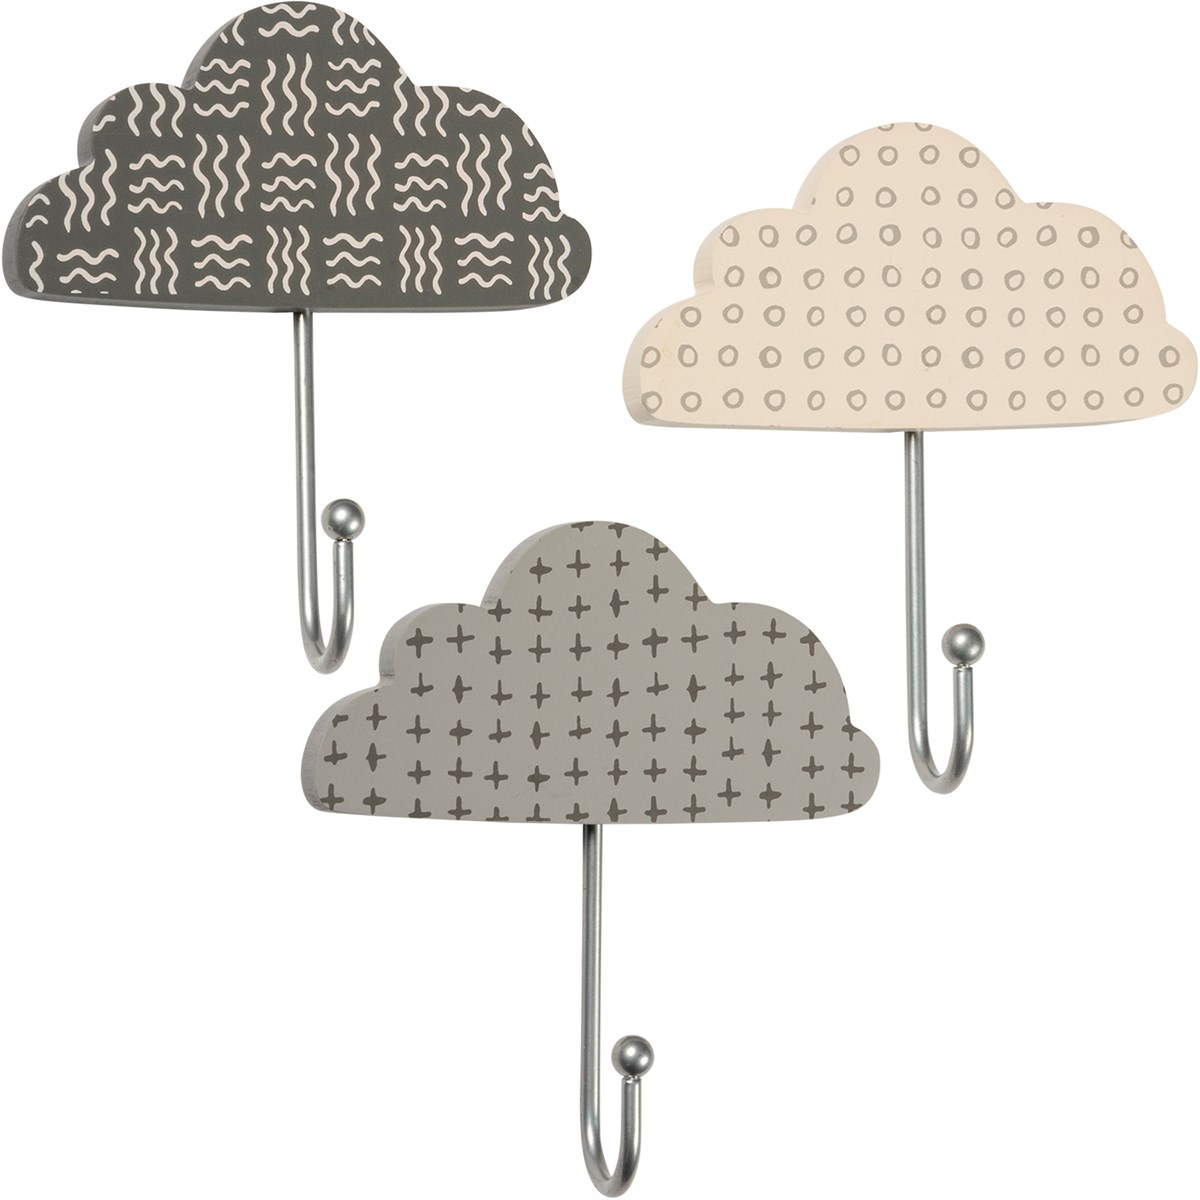 "Wall Hook Set - Clouds - 5.25"" x 2.65"" - Wood, Metal"